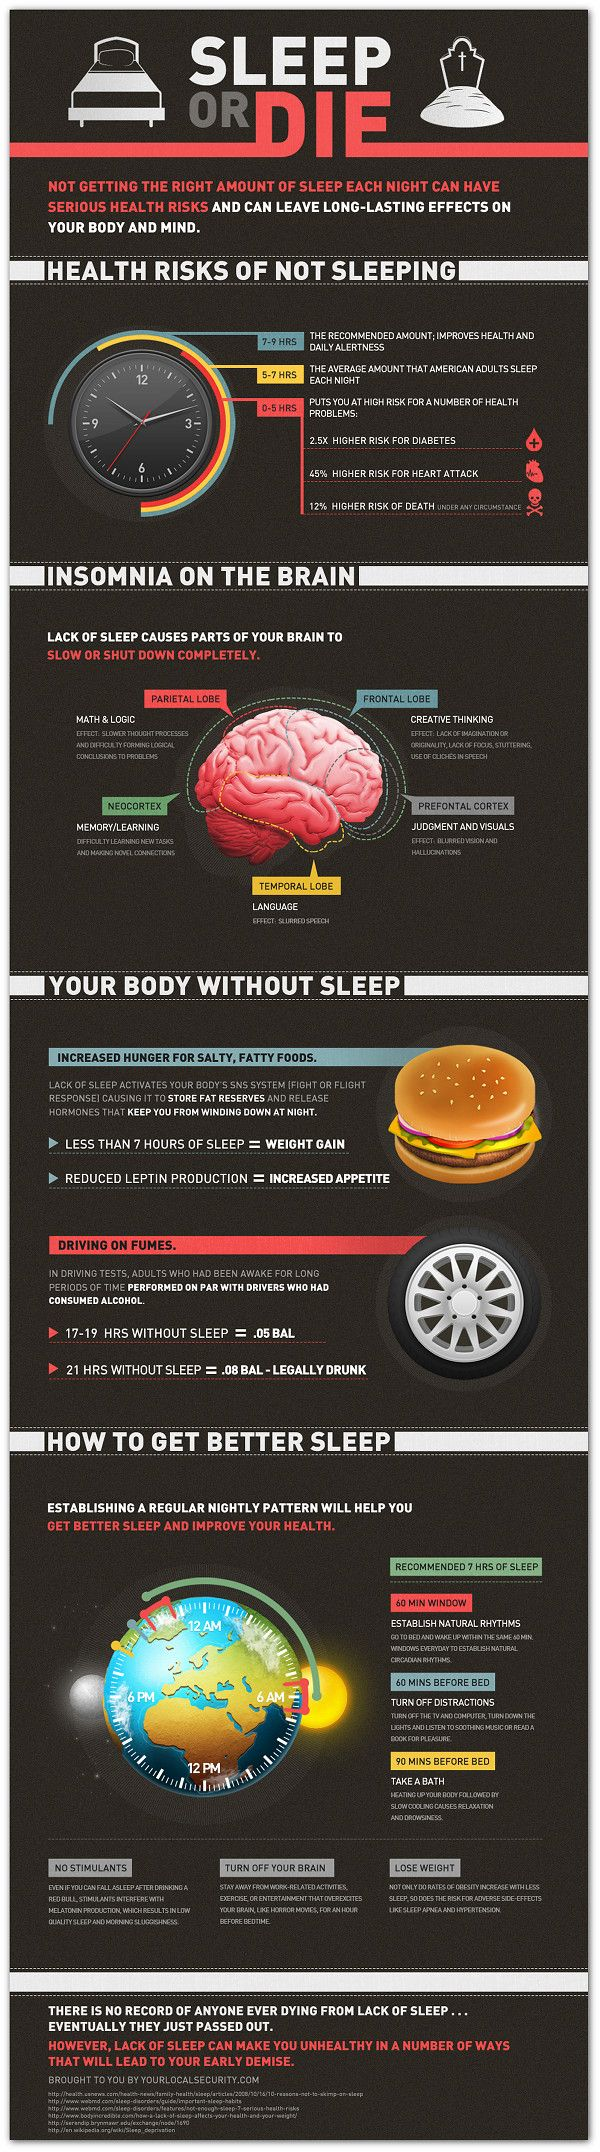 Why You Should Take Sleep More Seriously